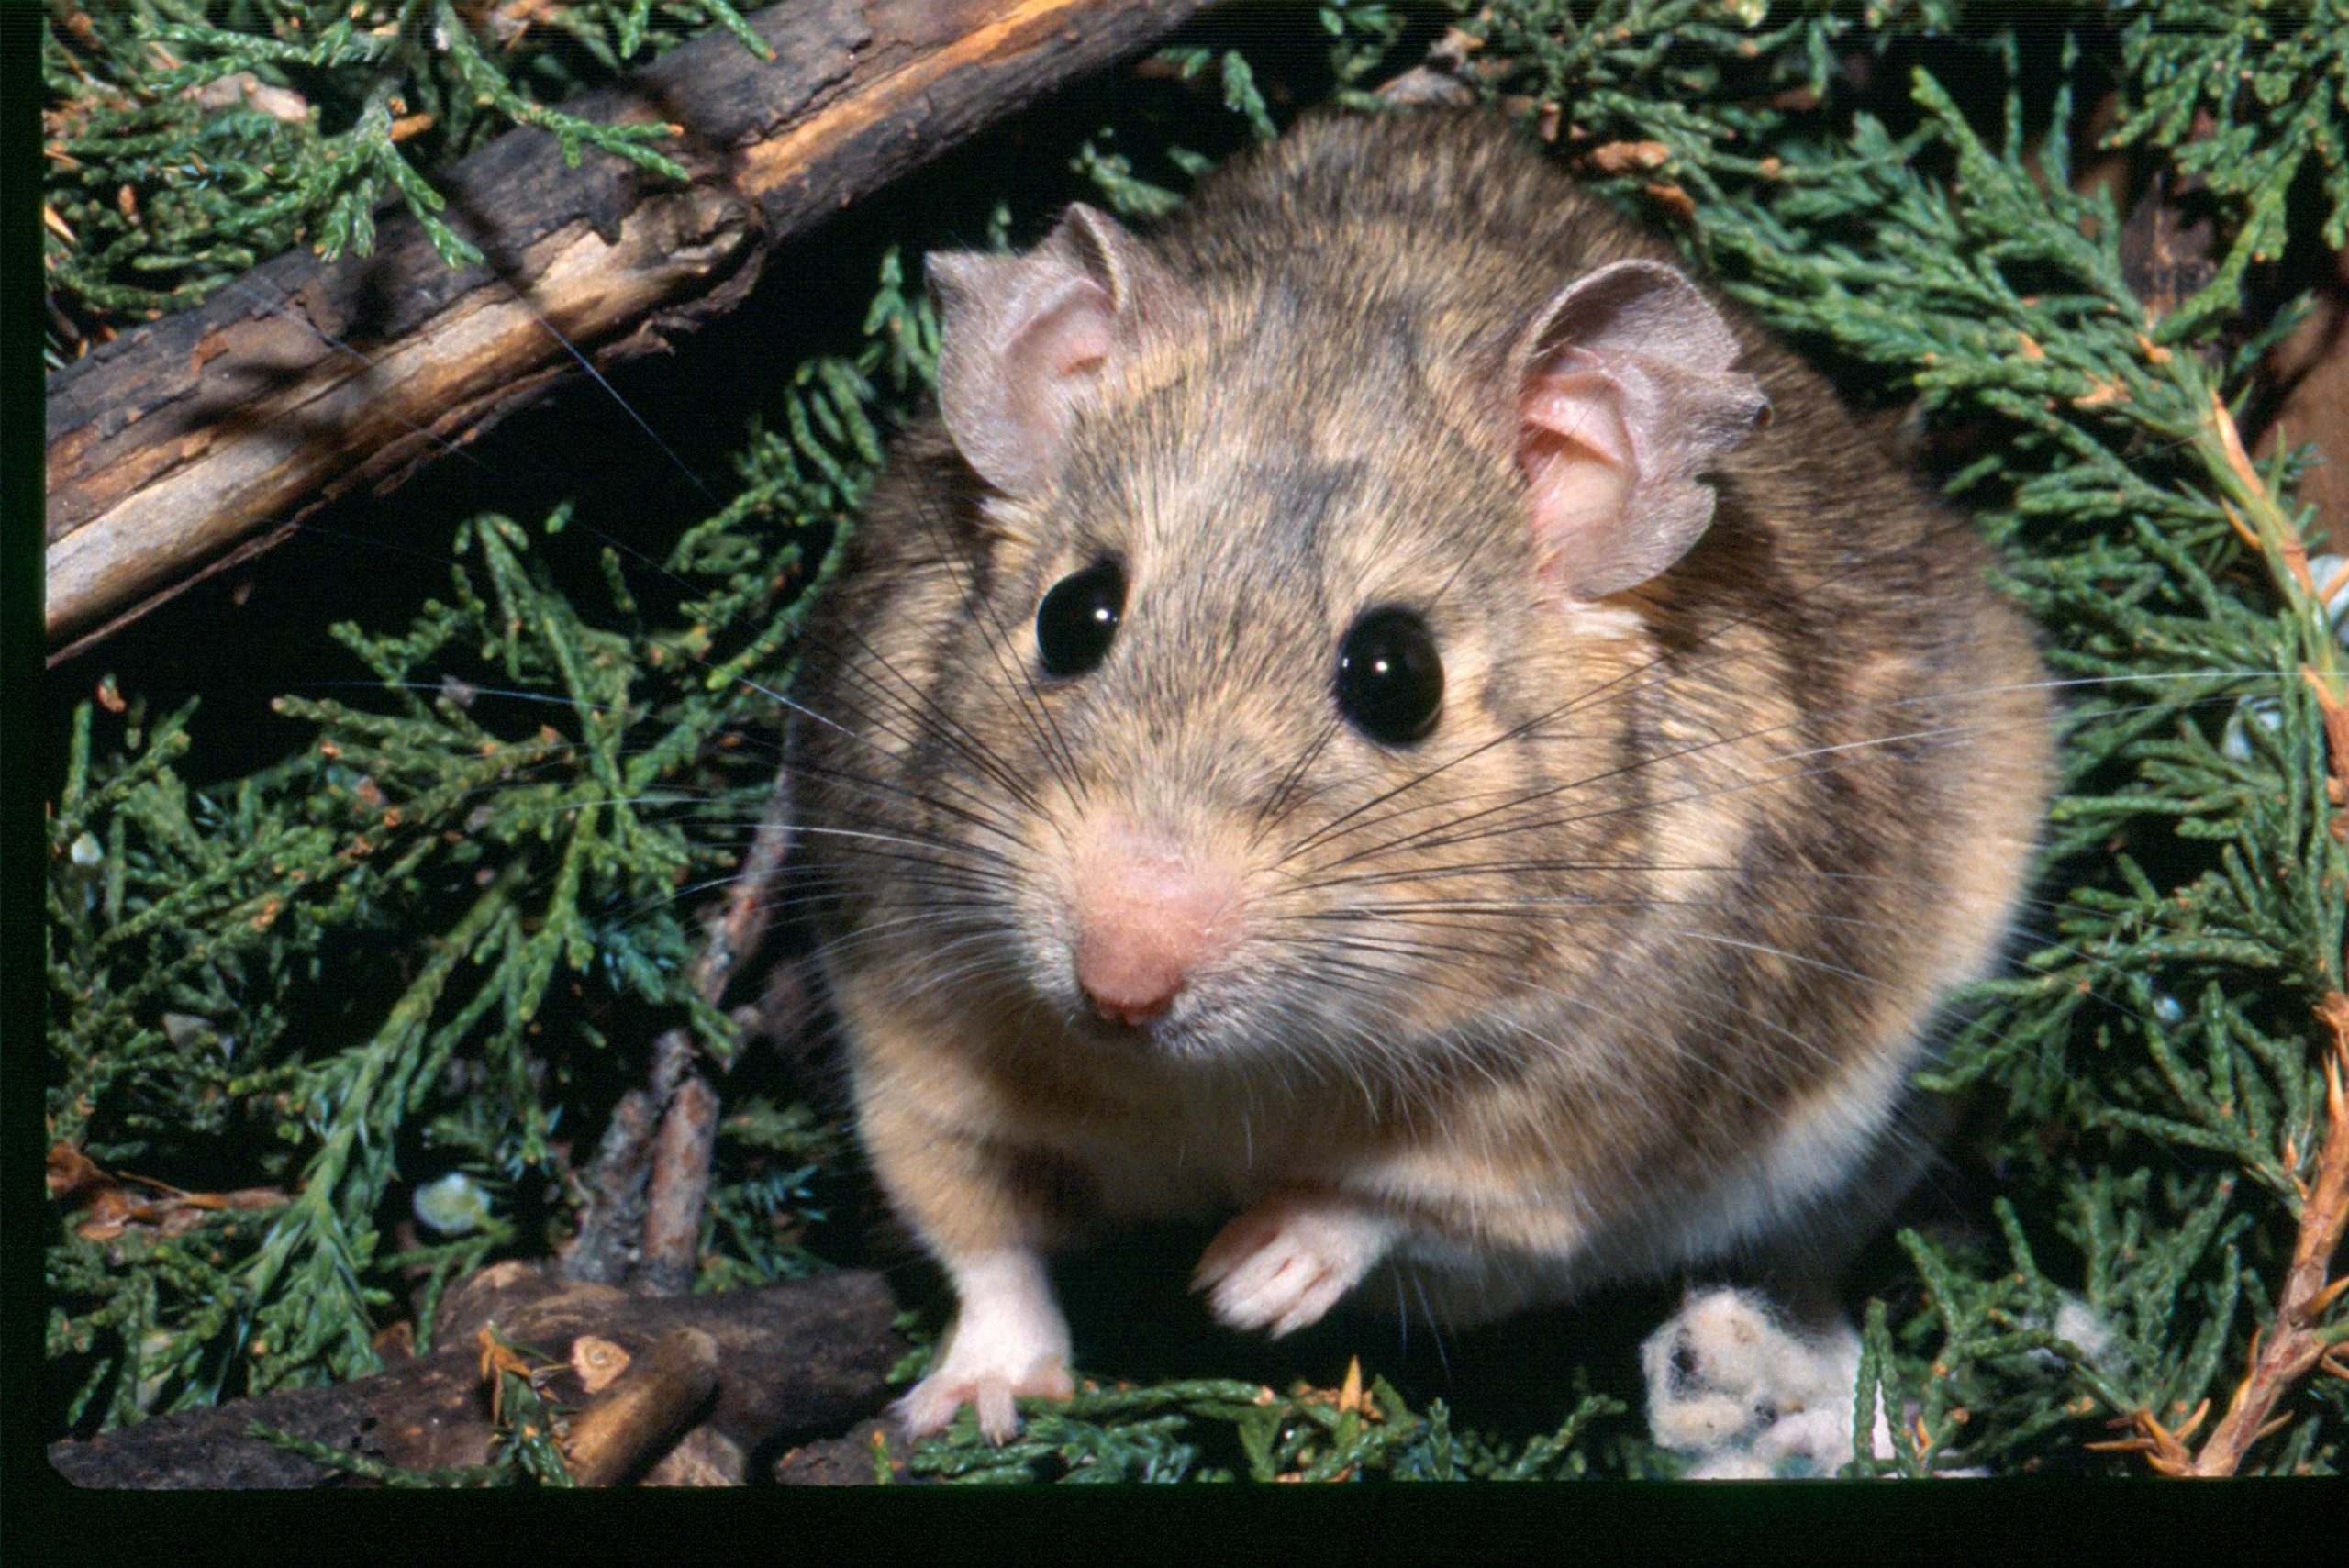 A packrat, also known as a woodrat, from the Great Basin of Utah is surrounded by mildly toxic juniper leaves that make up much of its diet.